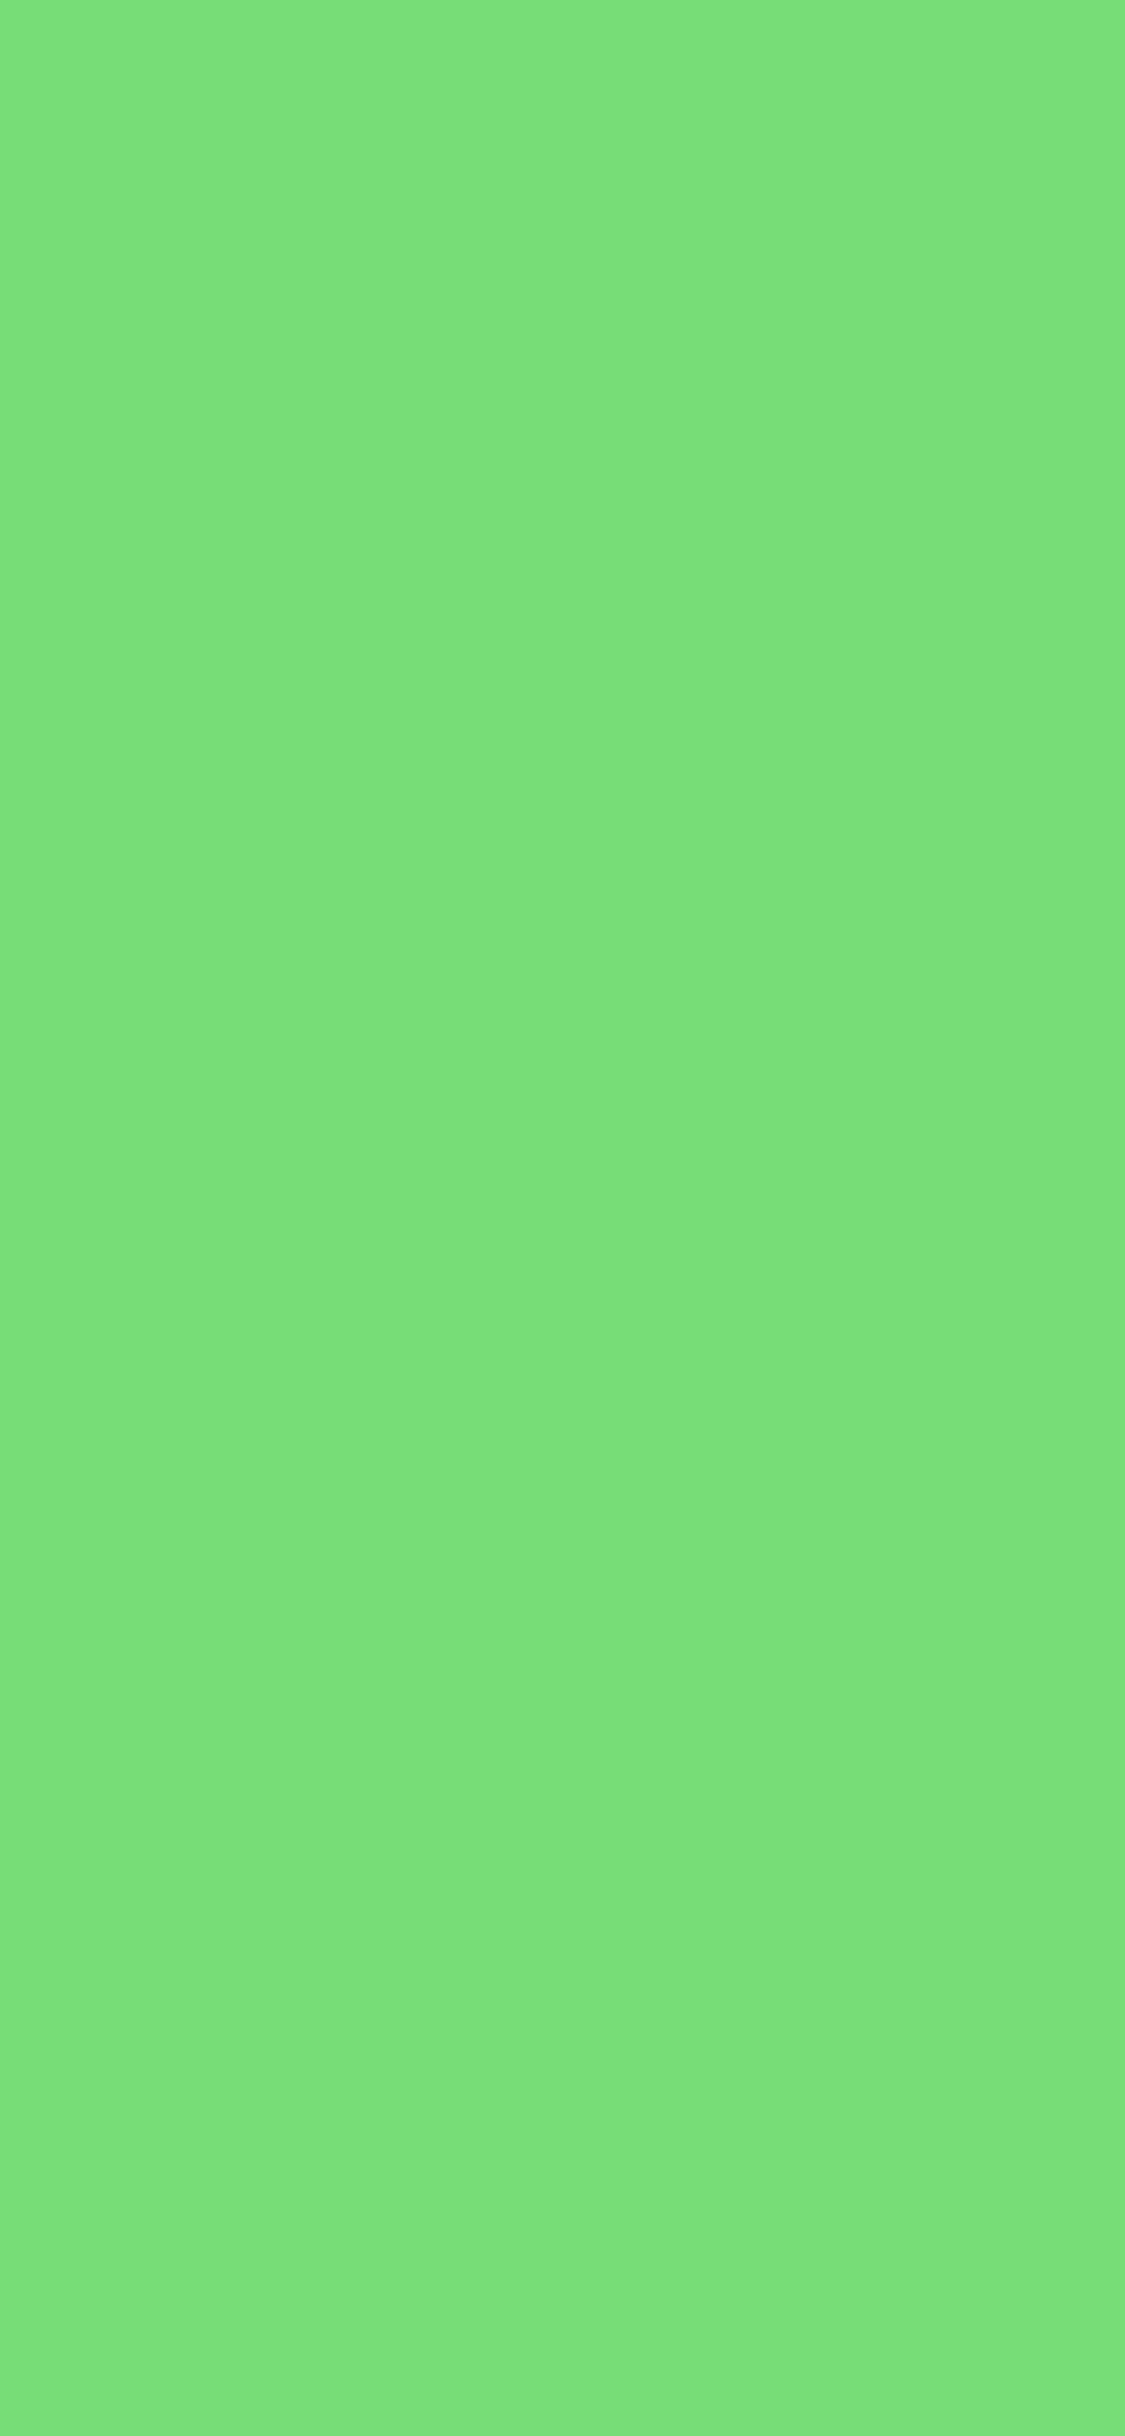 1125x2436 Pastel Green Solid Color Background